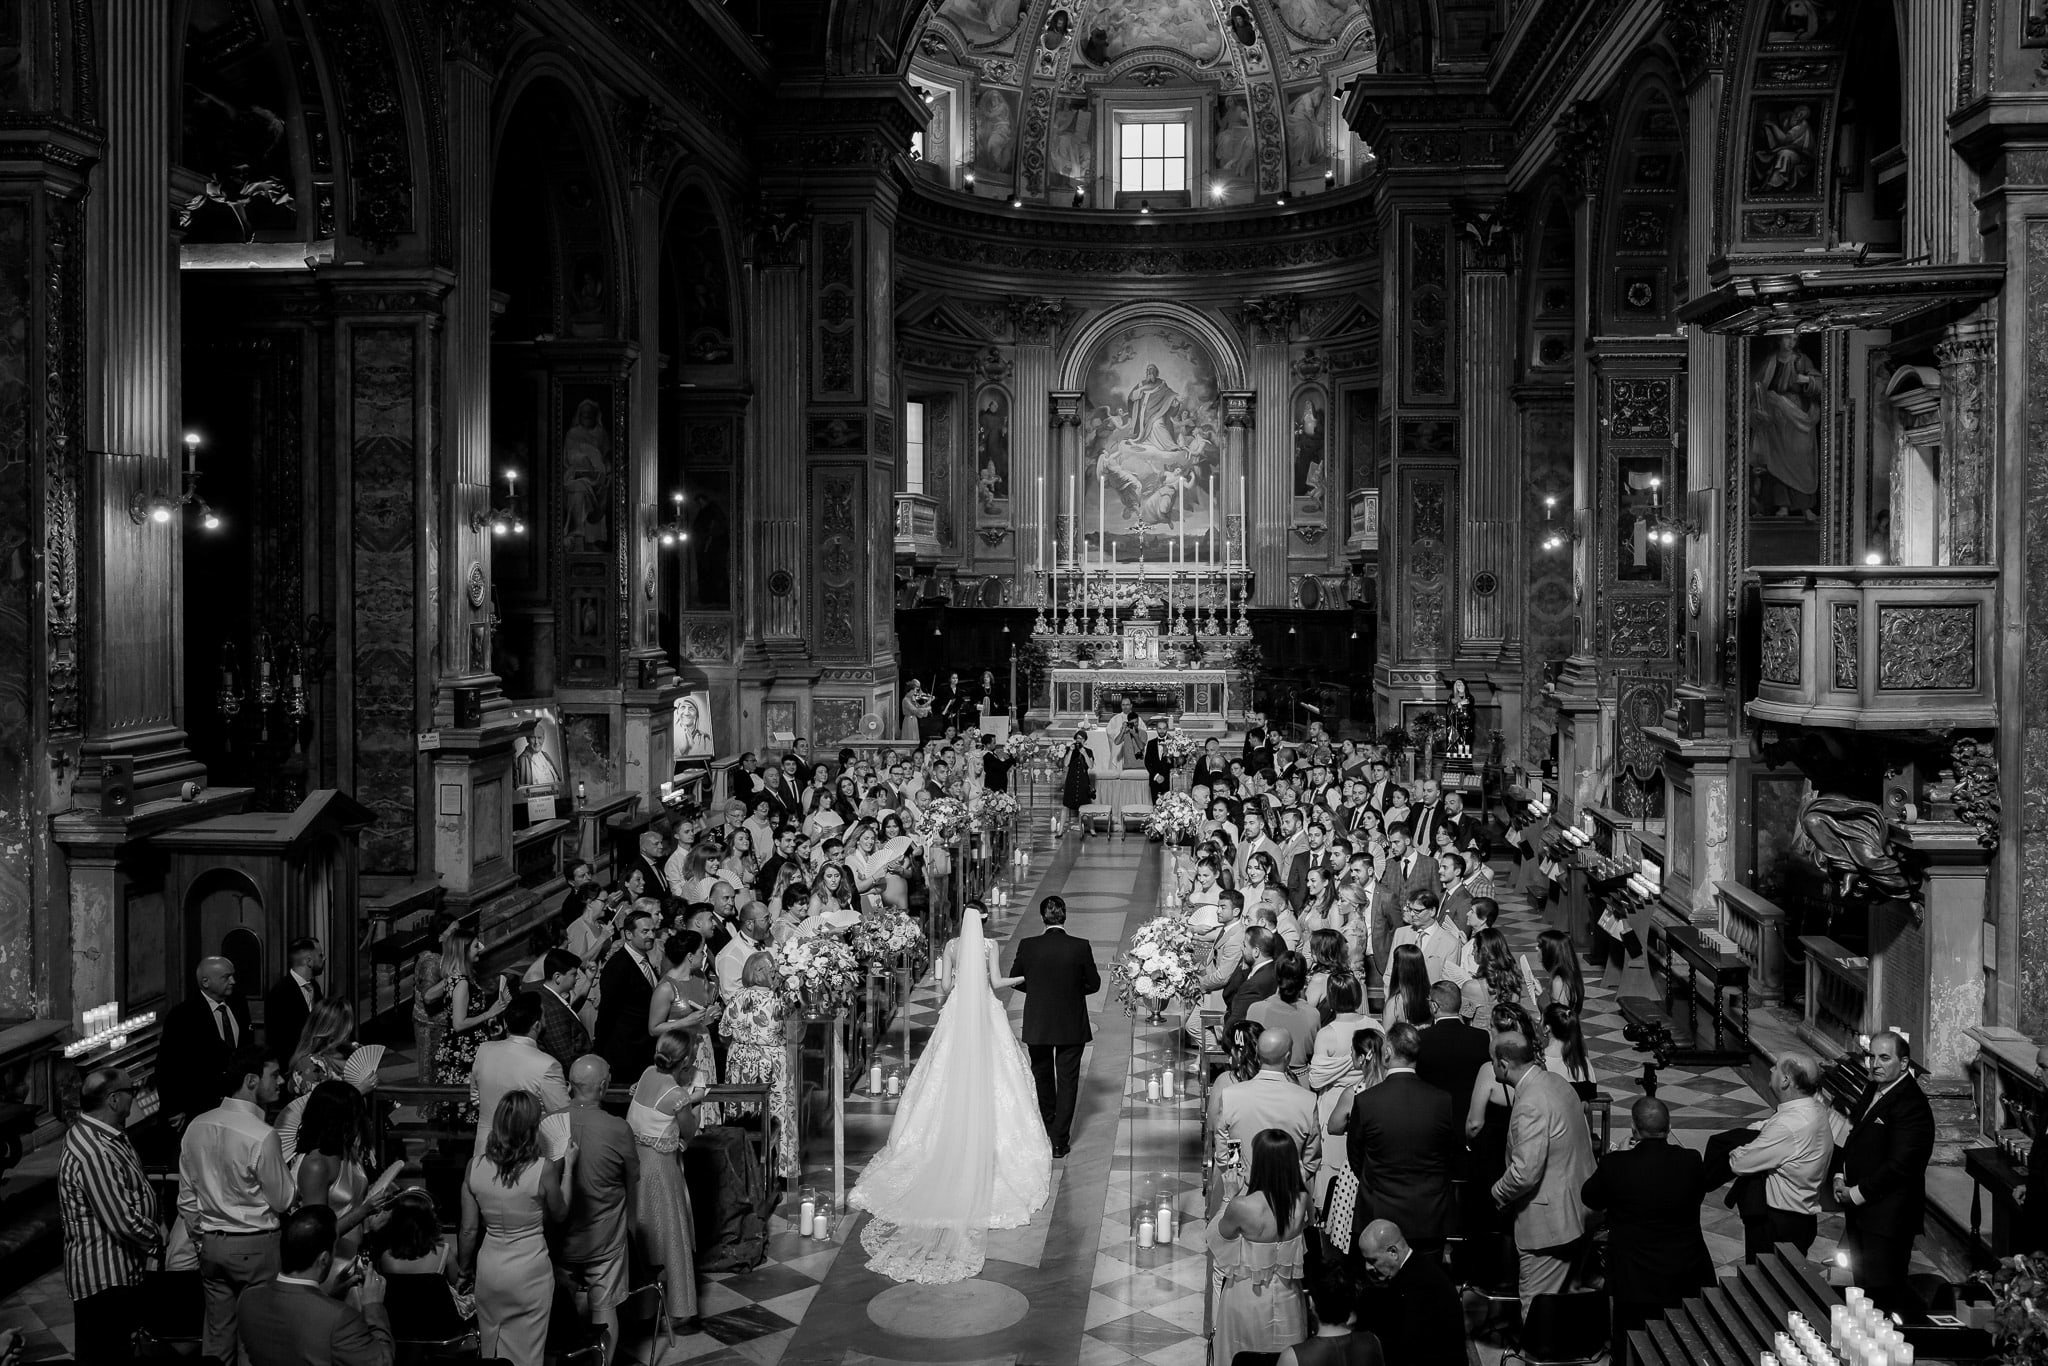 entry of the bride with her father into the church in an image captured by the wedding photographer rome